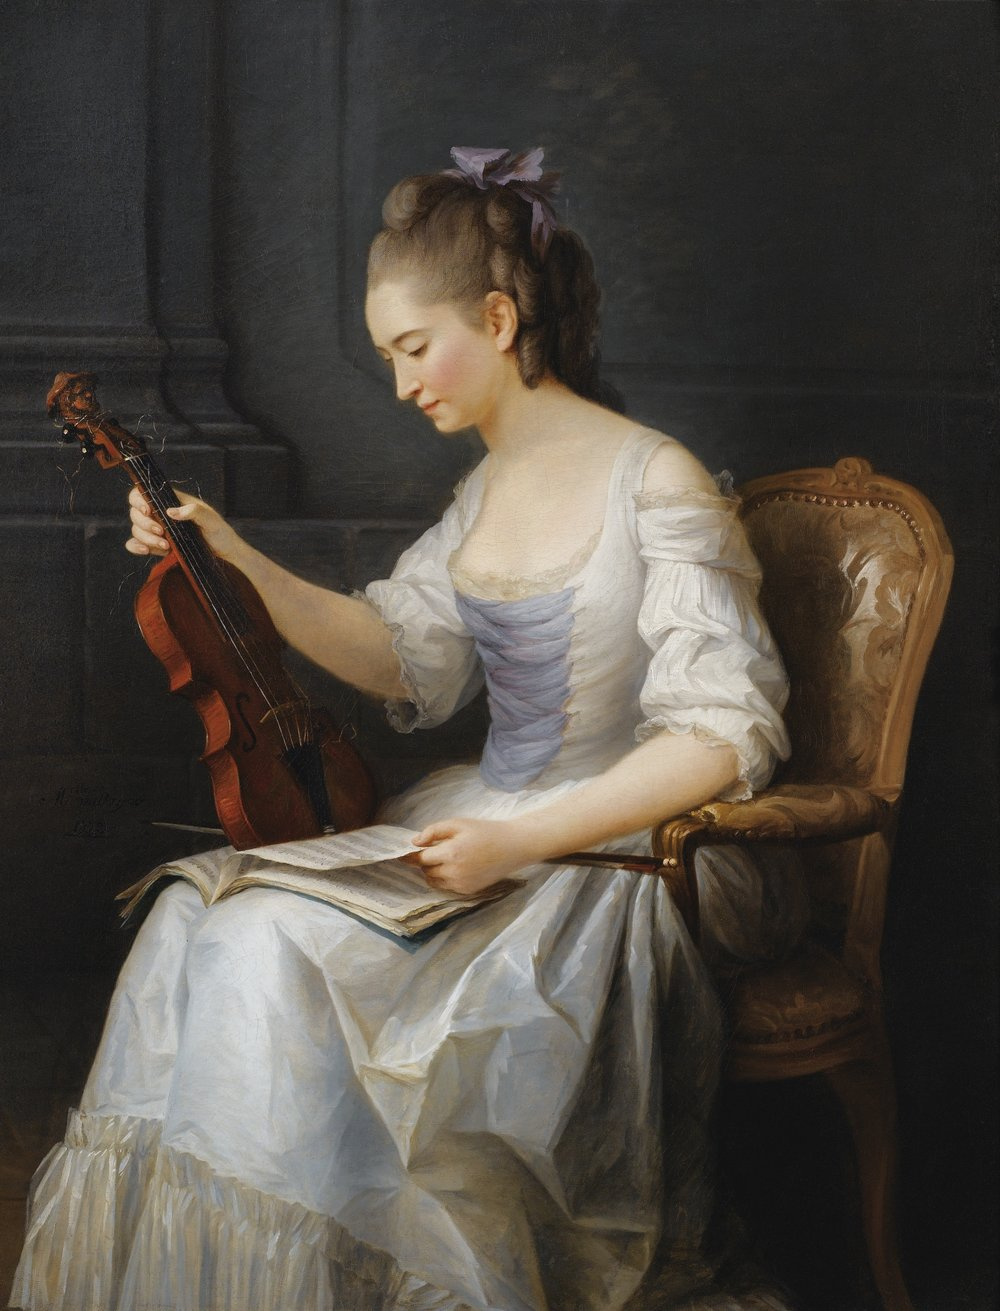 Anne_Vallayer-Coster,_Portrait_of_a_Violinist.jpg